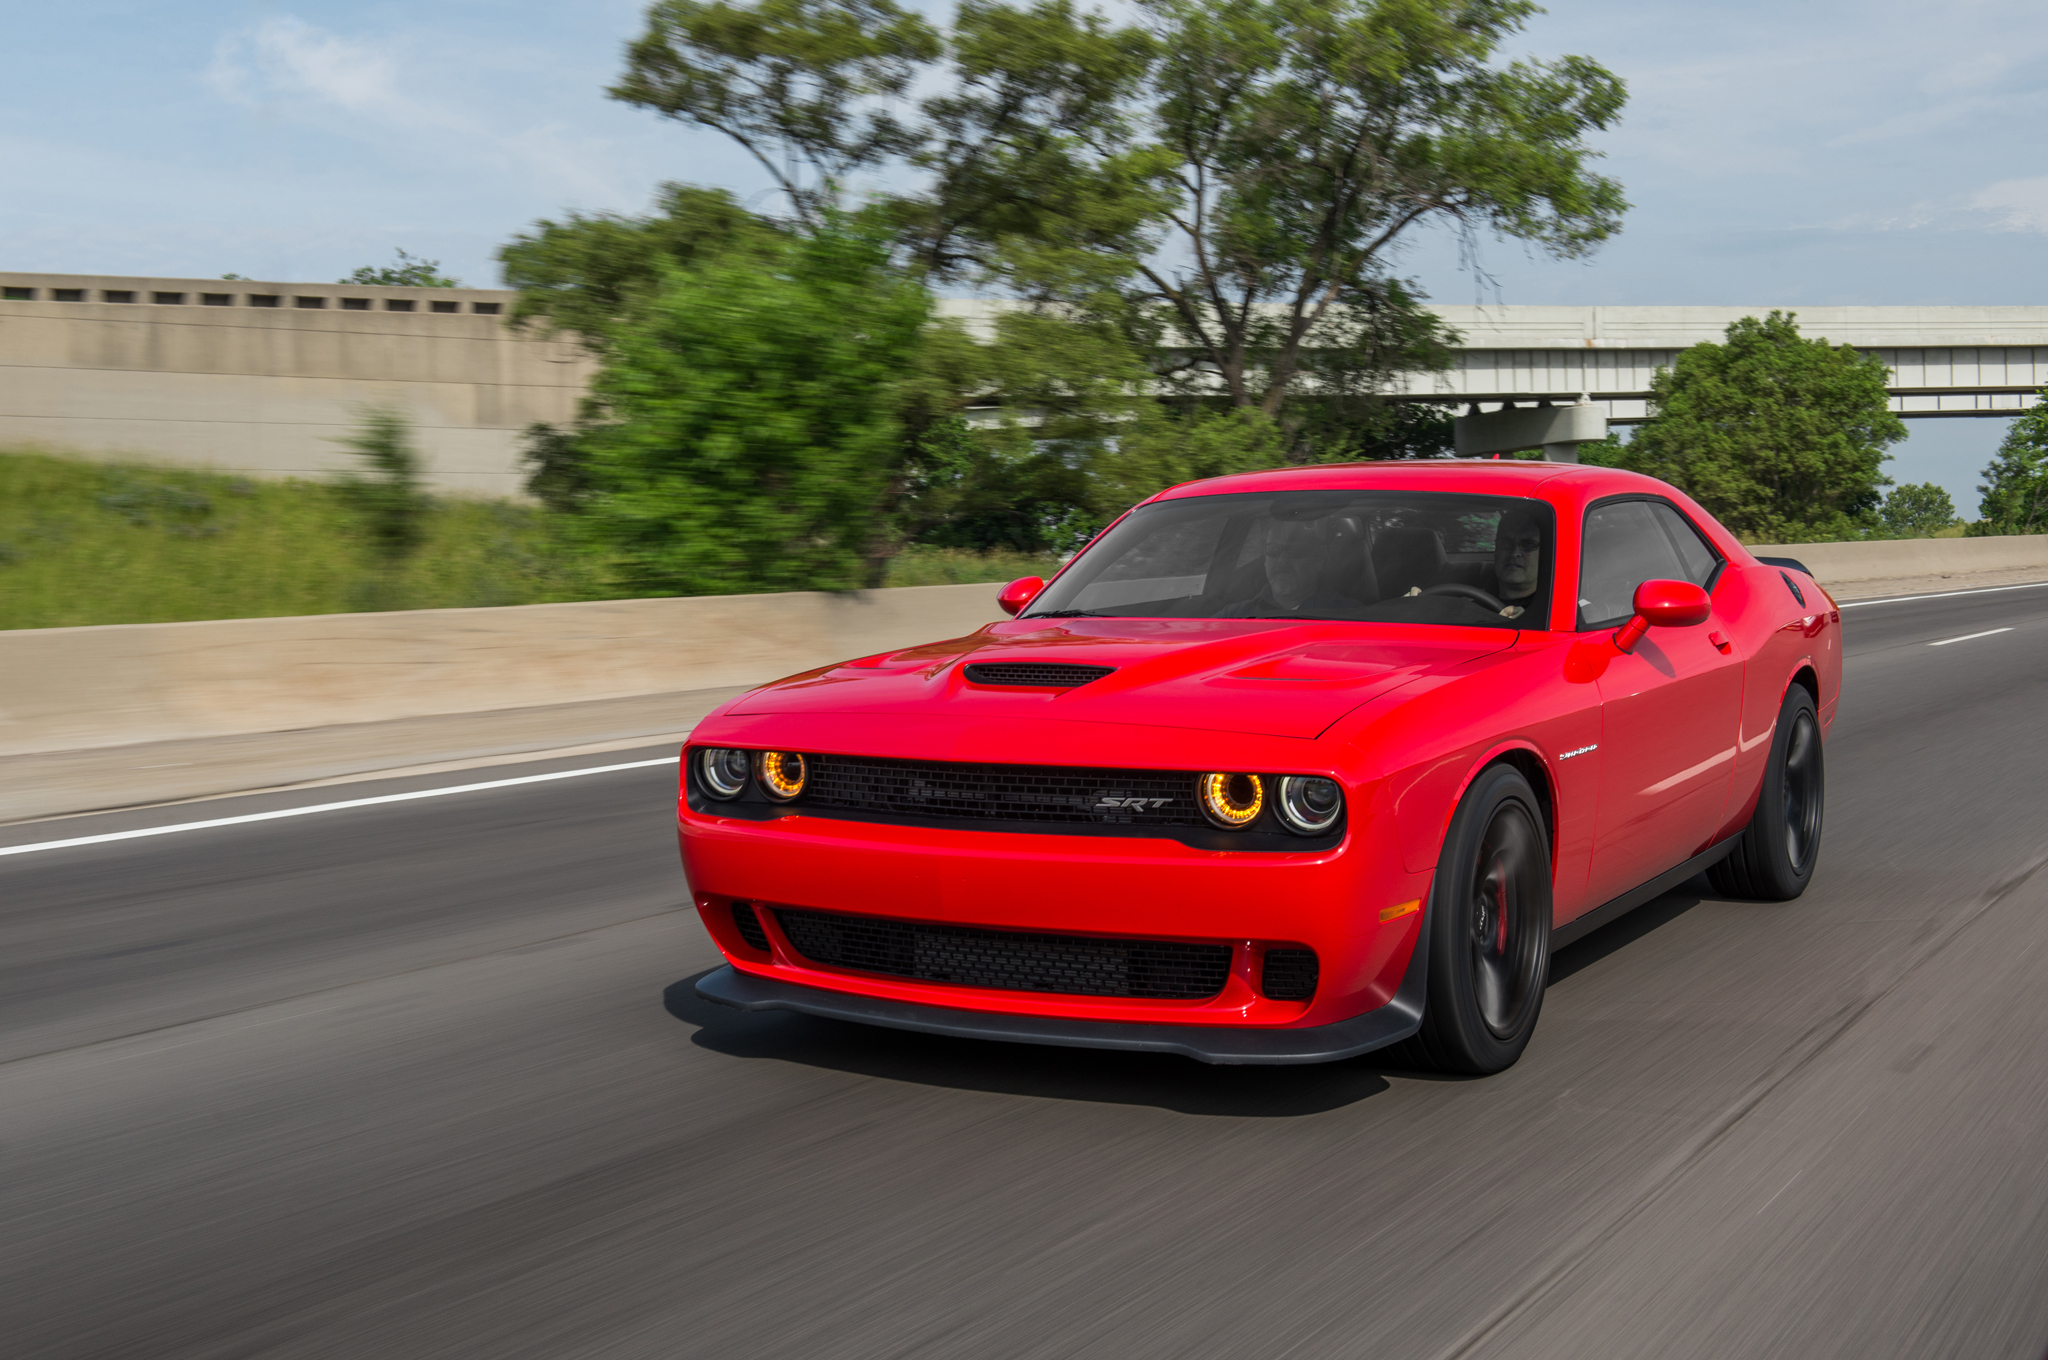 2015 Dodge Challenger Srt Hellcat Makes Astounding 707 Hp 650 Lb Ft 4 Fuse Box